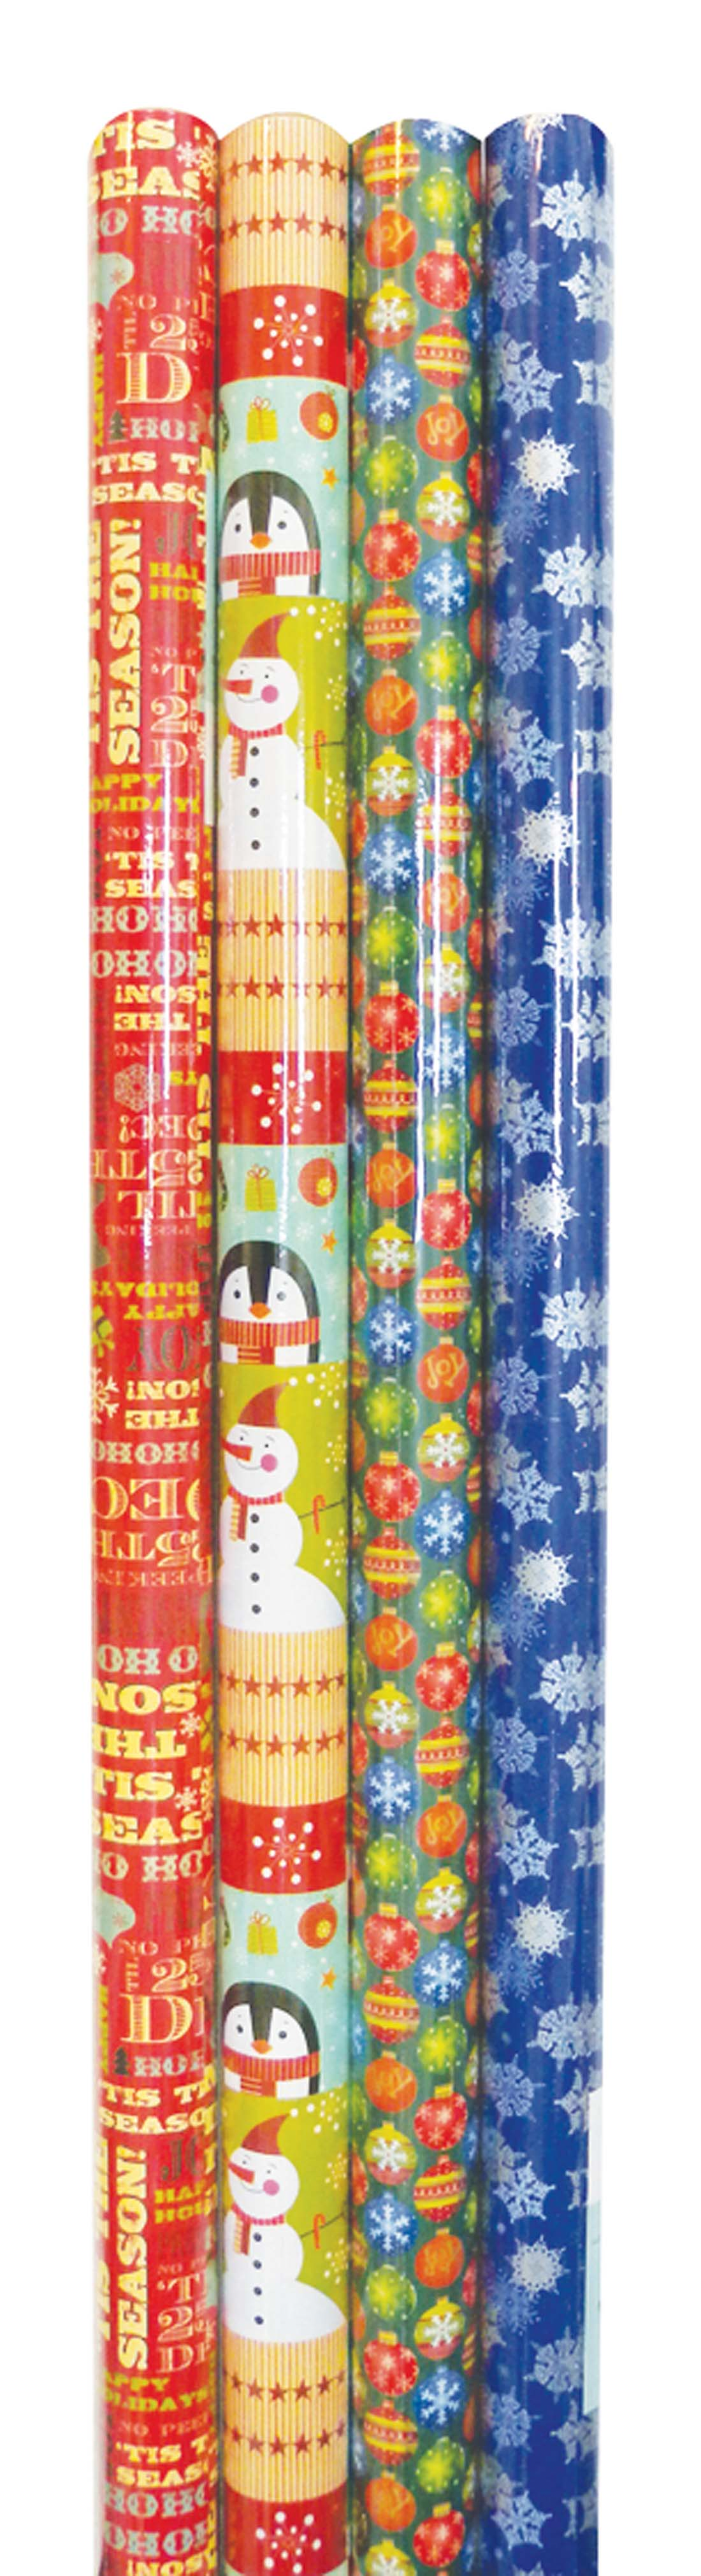 View CHRISTMAS WRAPPING PAPER 40 SQ FT  ASSORTED DESIGNS IN DISPLAY